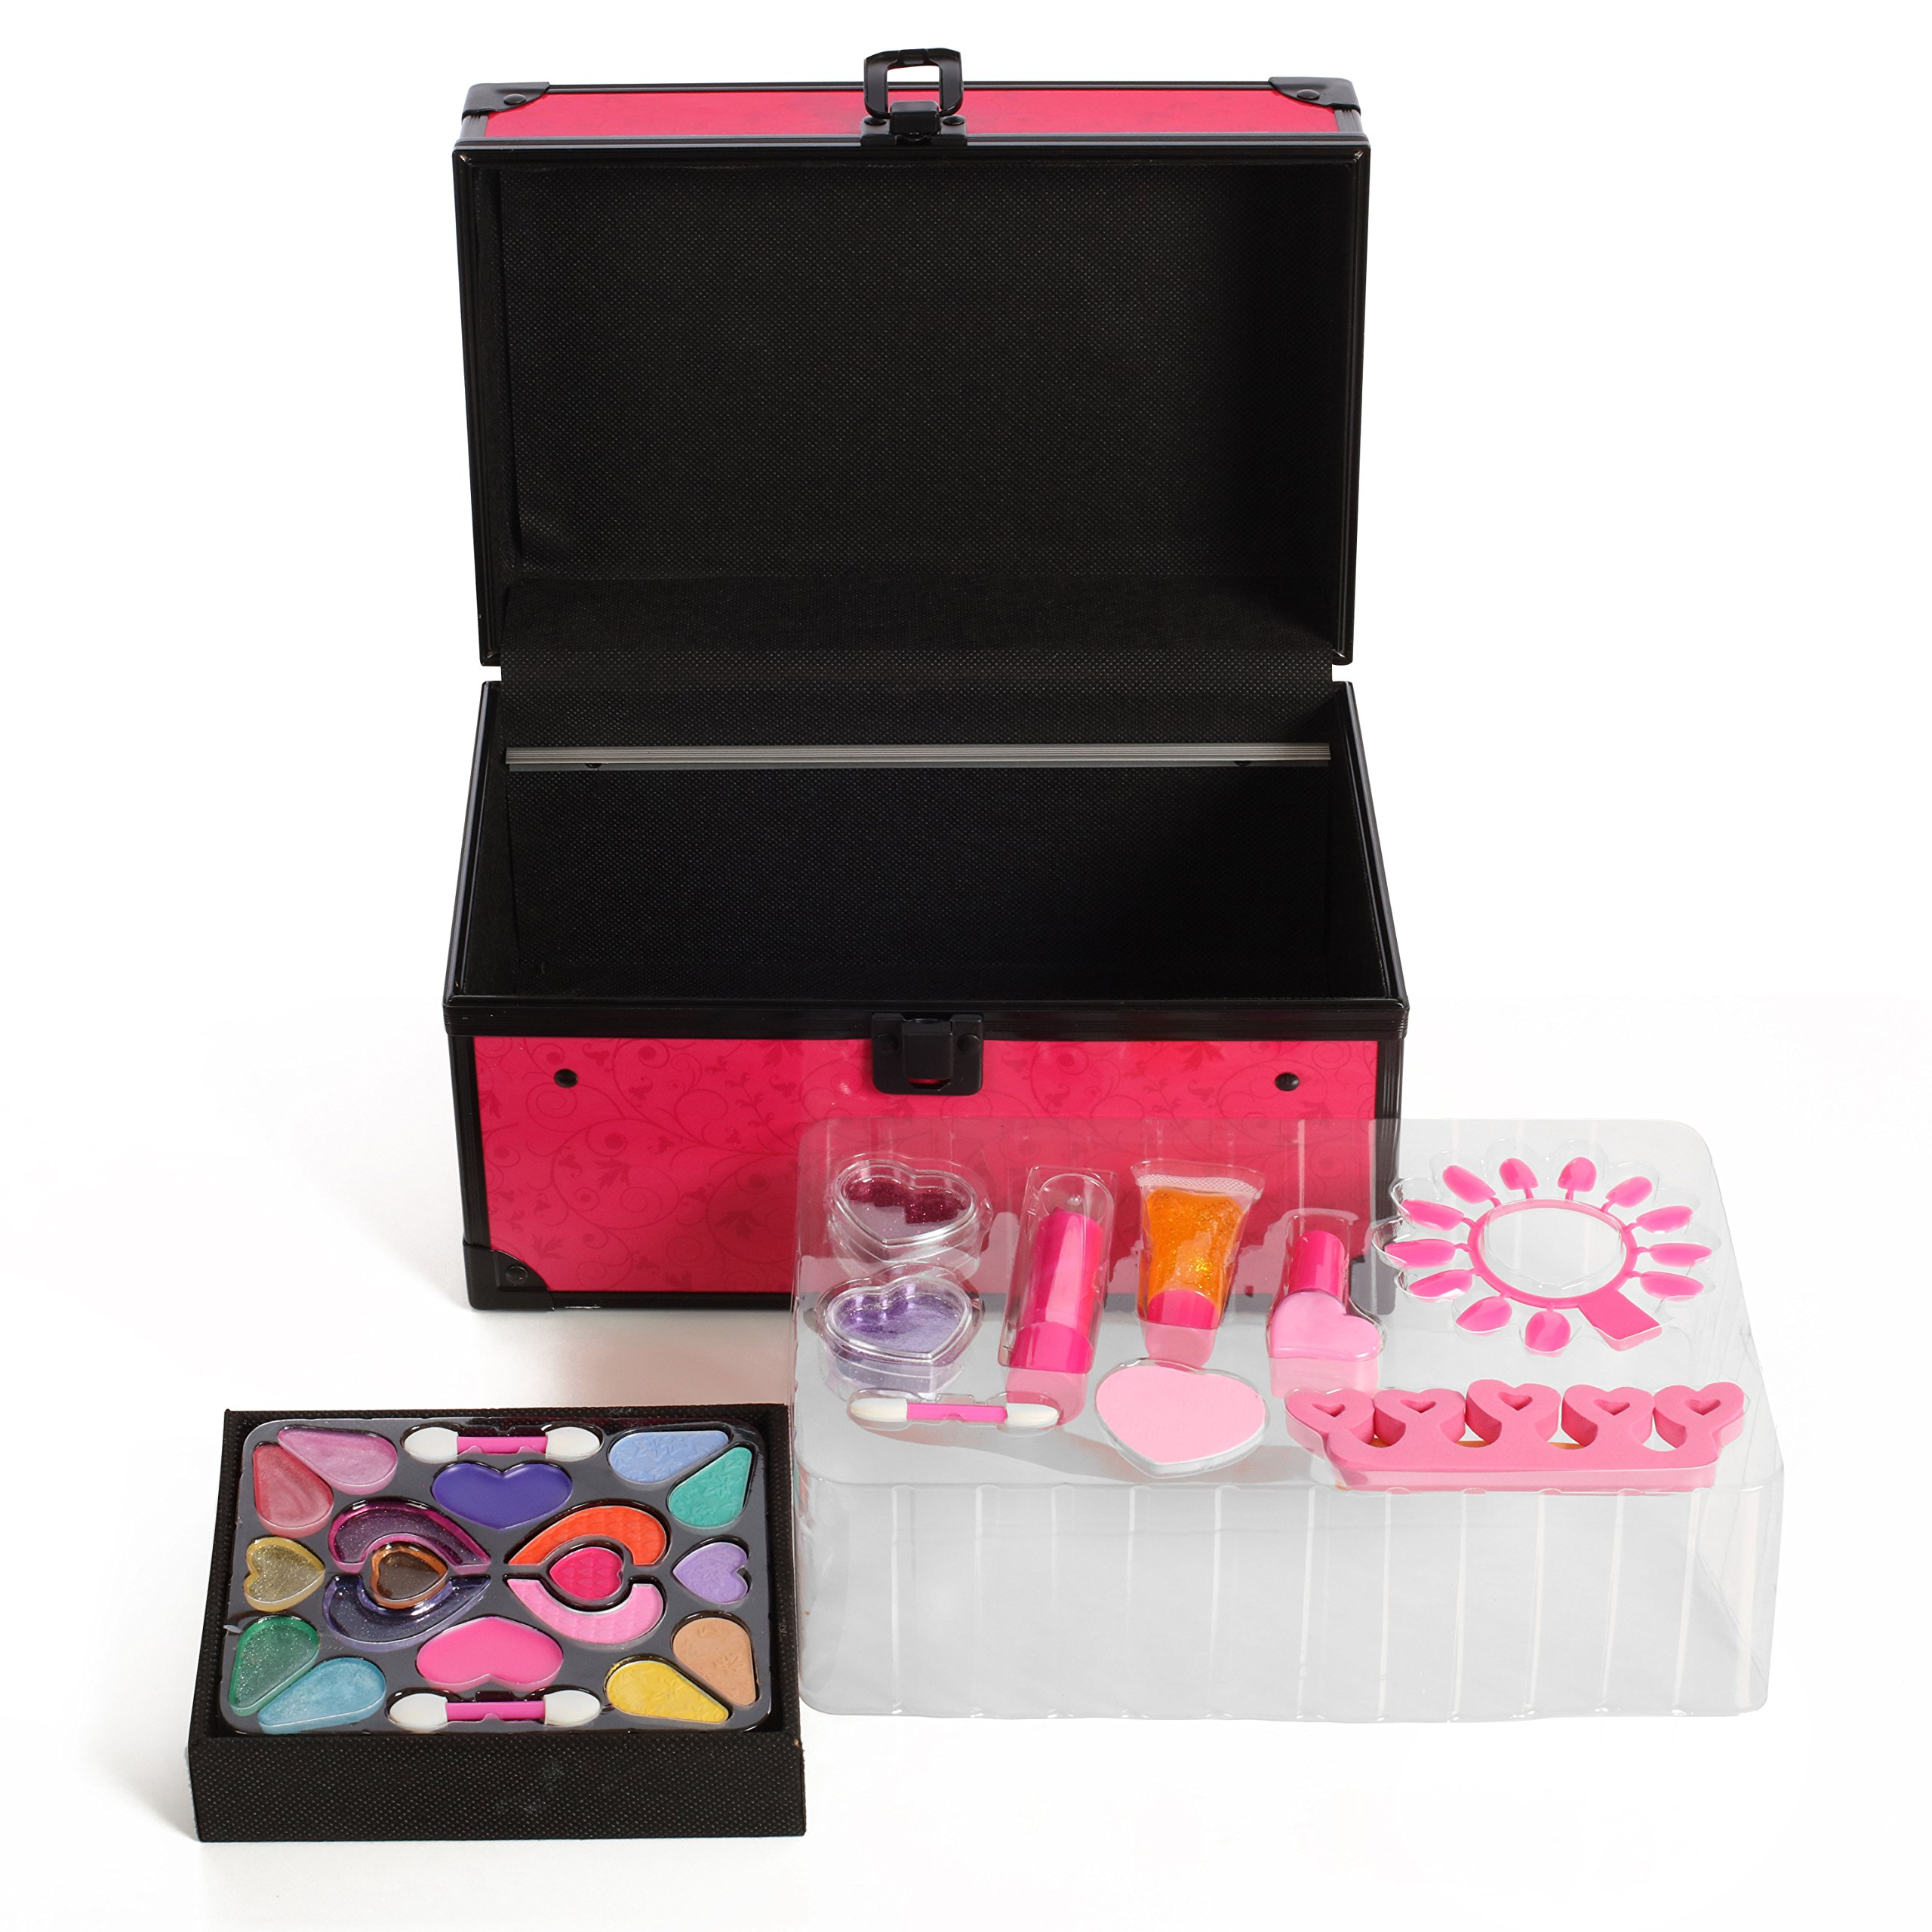 IQ Toys Deluxe All in One Travel Girls Makeup Set by IQ Toys (Image #2)